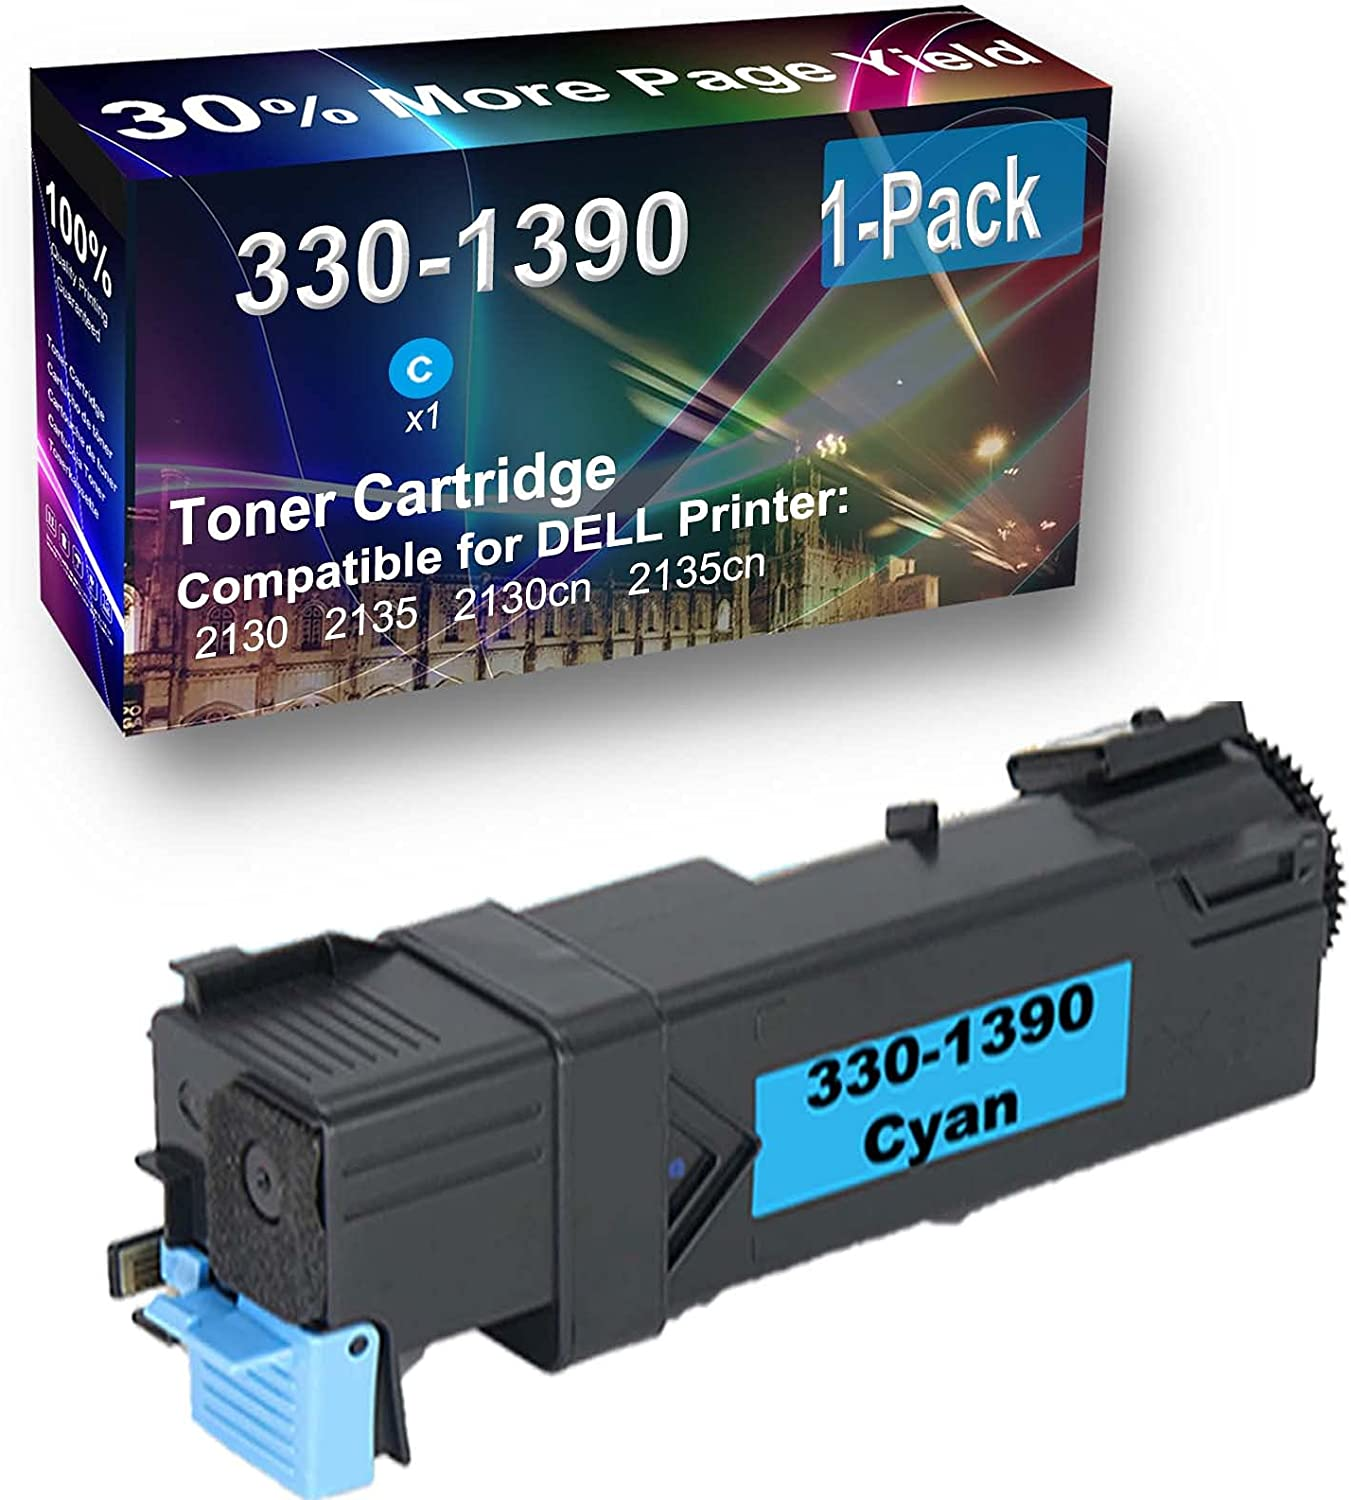 1-Pack (Cyan) Compatible High Capacity 330-1390 Toner Cartridge Used for Dell 2130, 2135 Printer